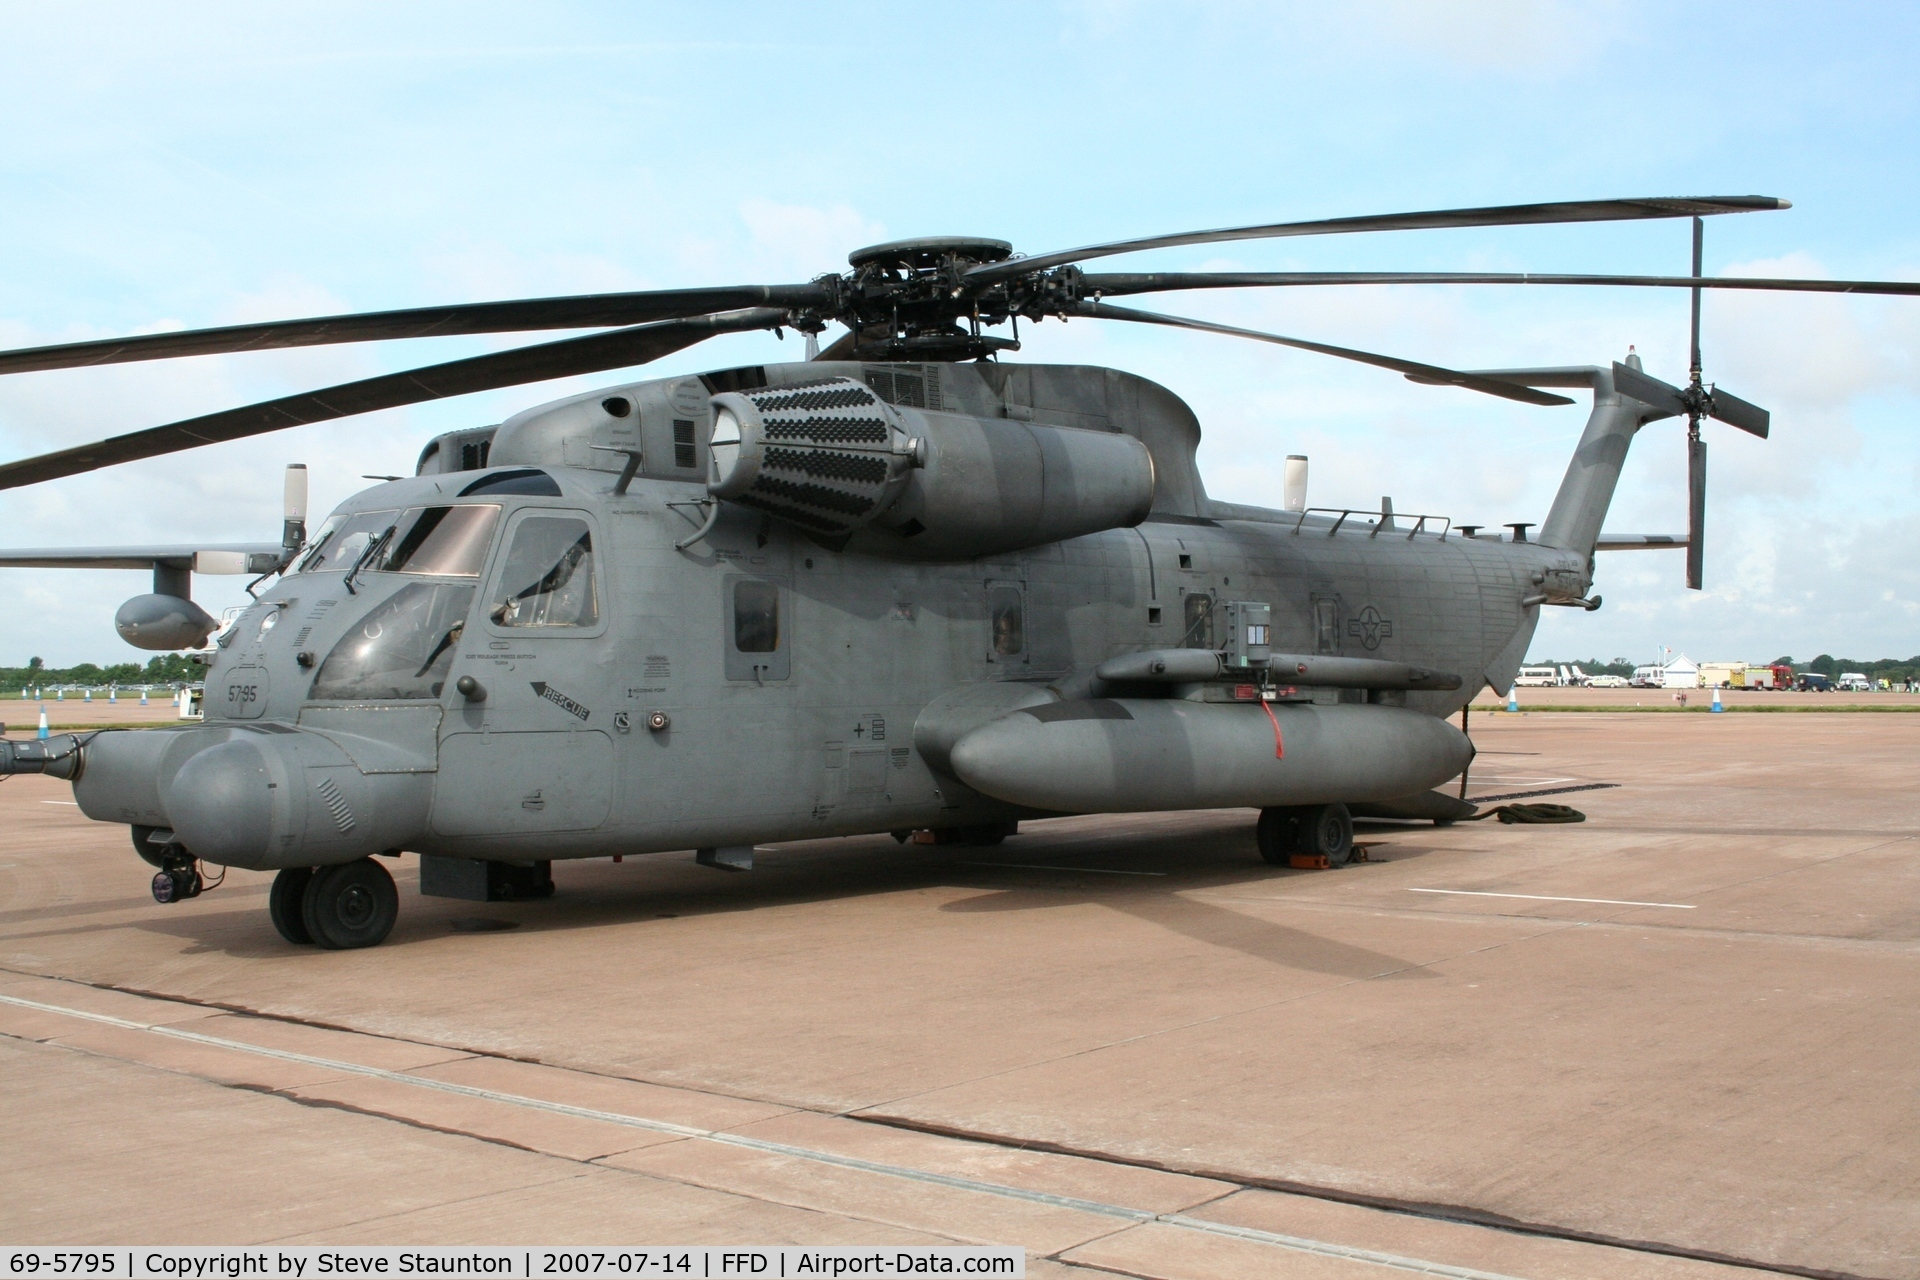 69-5795, 1969 Sikorsky MH-53M Pave Low IV C/N 65-250, Royal International Air Tattoo 2007